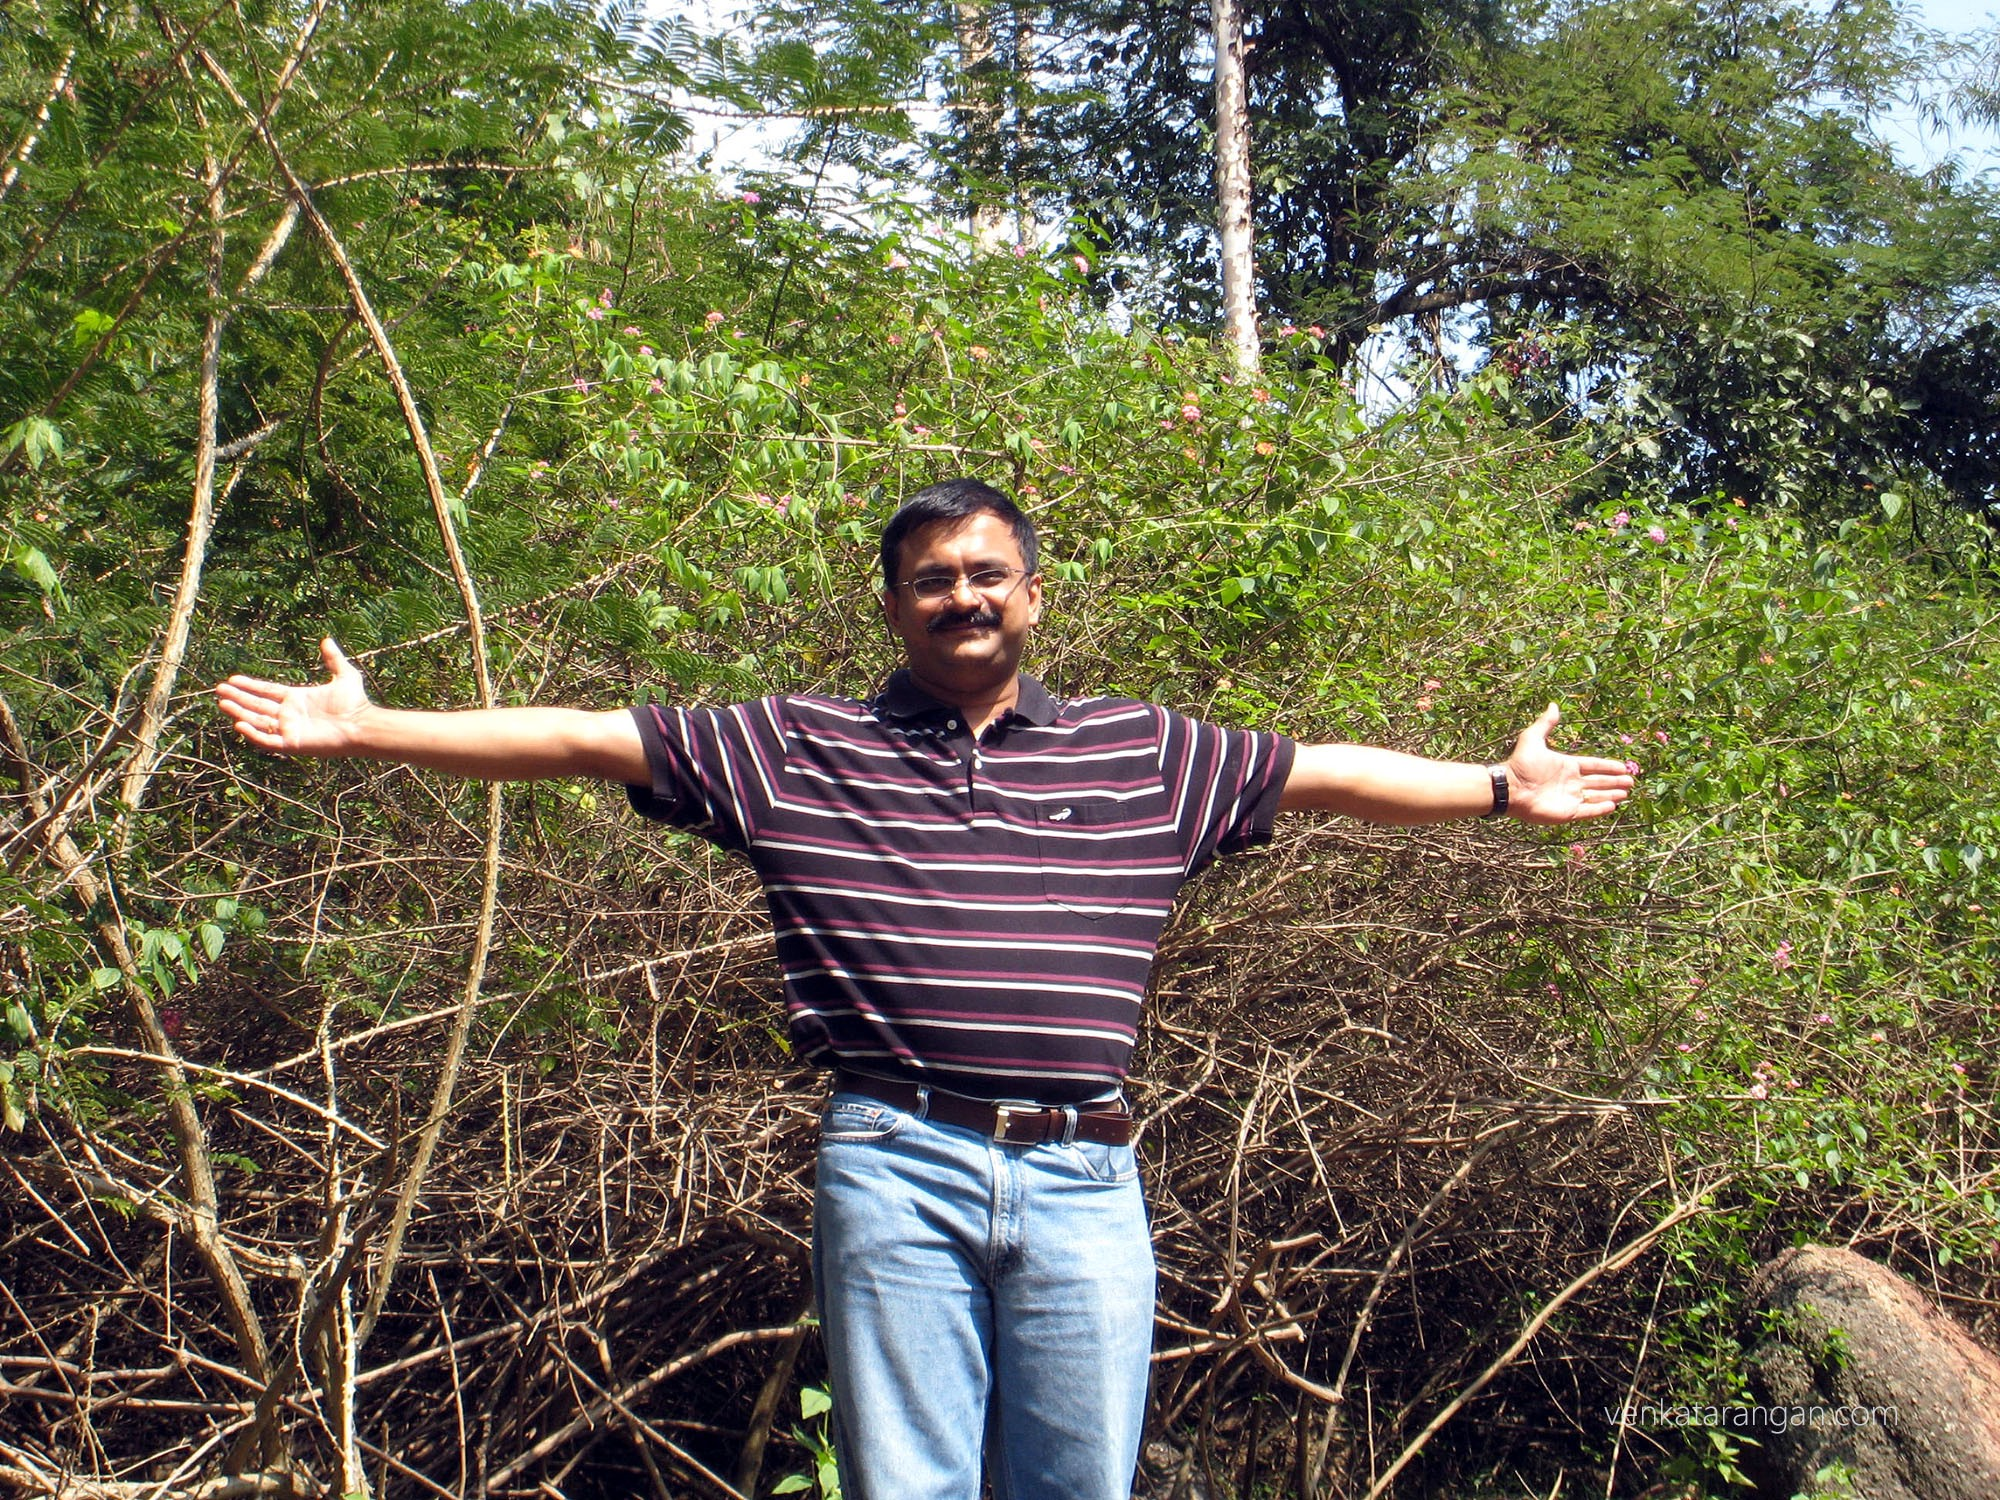 Venkatarangan posing in the Trek path in Yelagiri